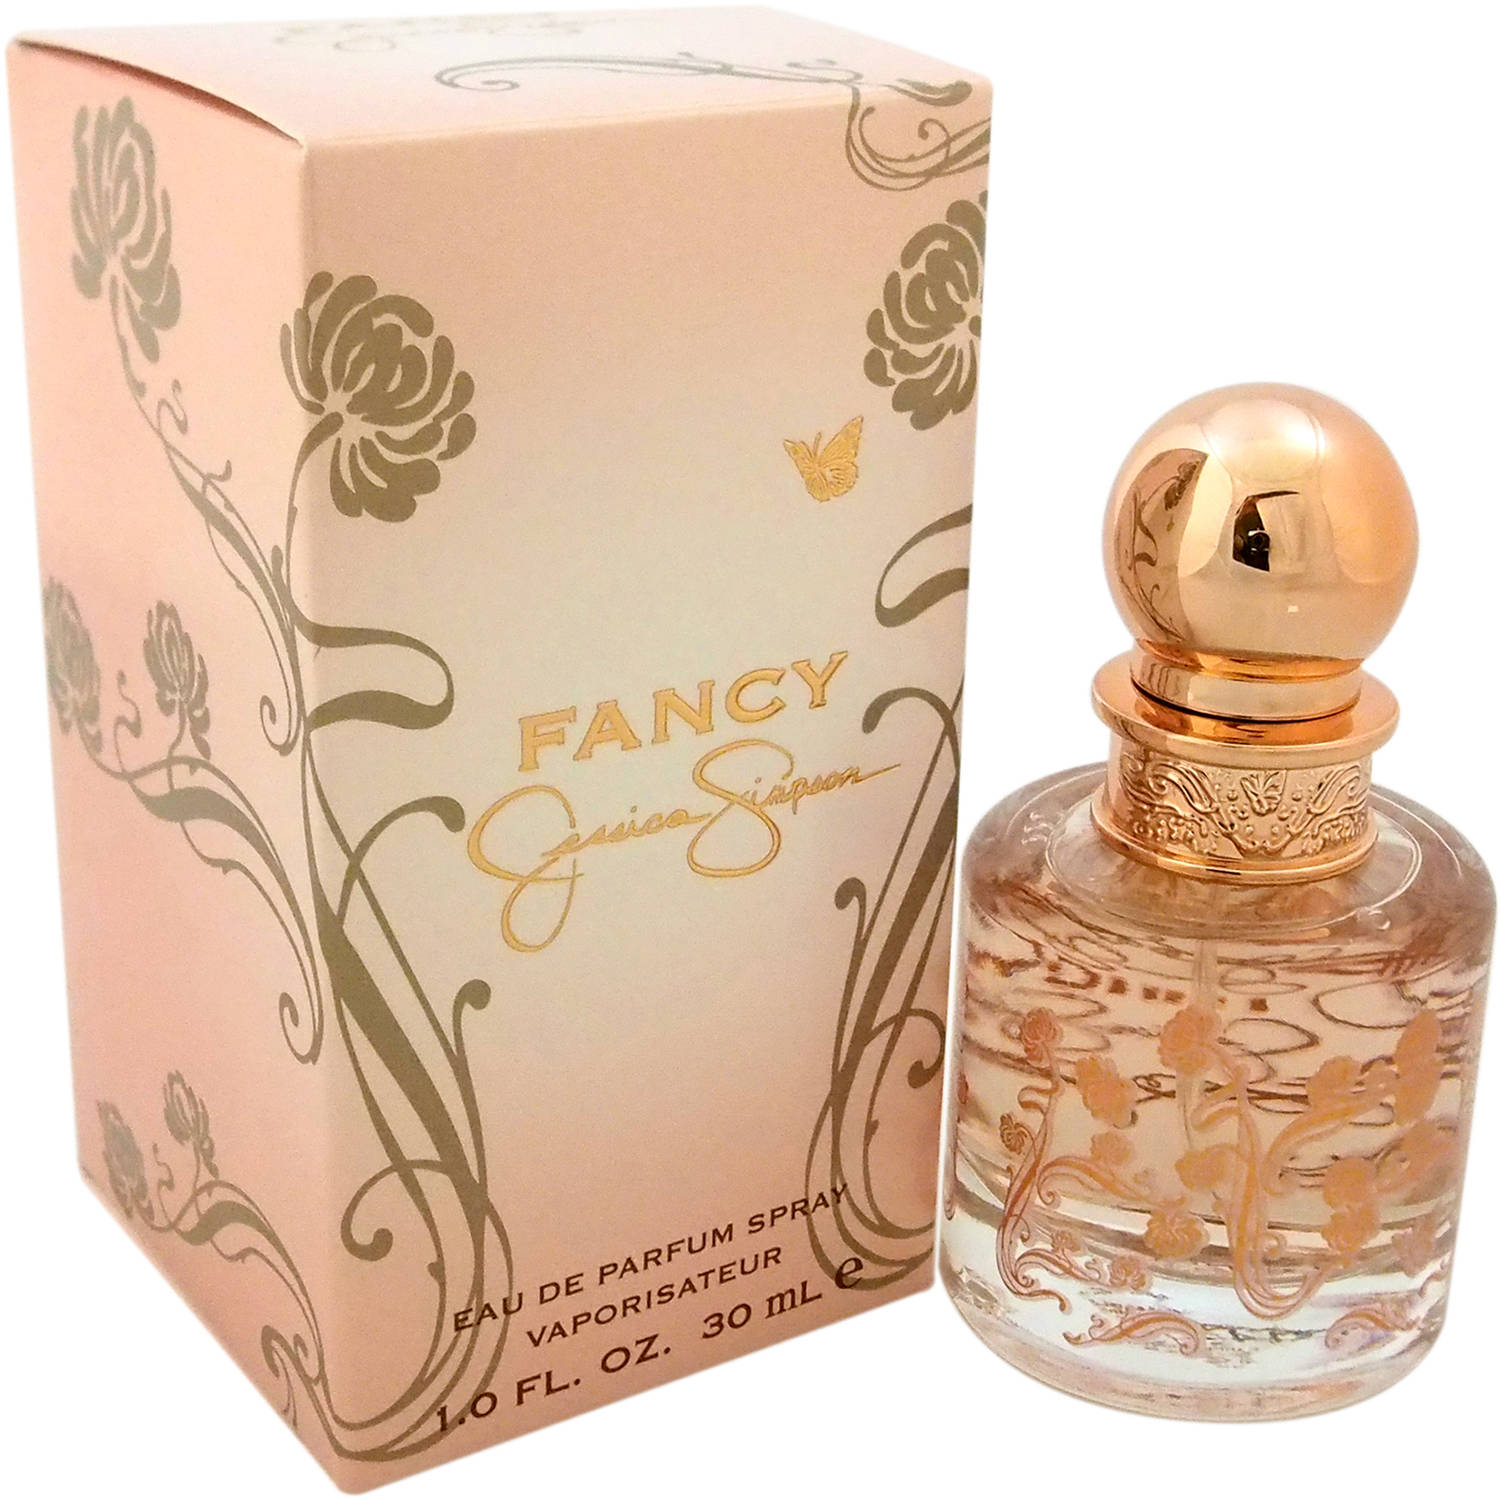 Jessica Simpson Fancy Women's EDP Spray, 1 fl oz